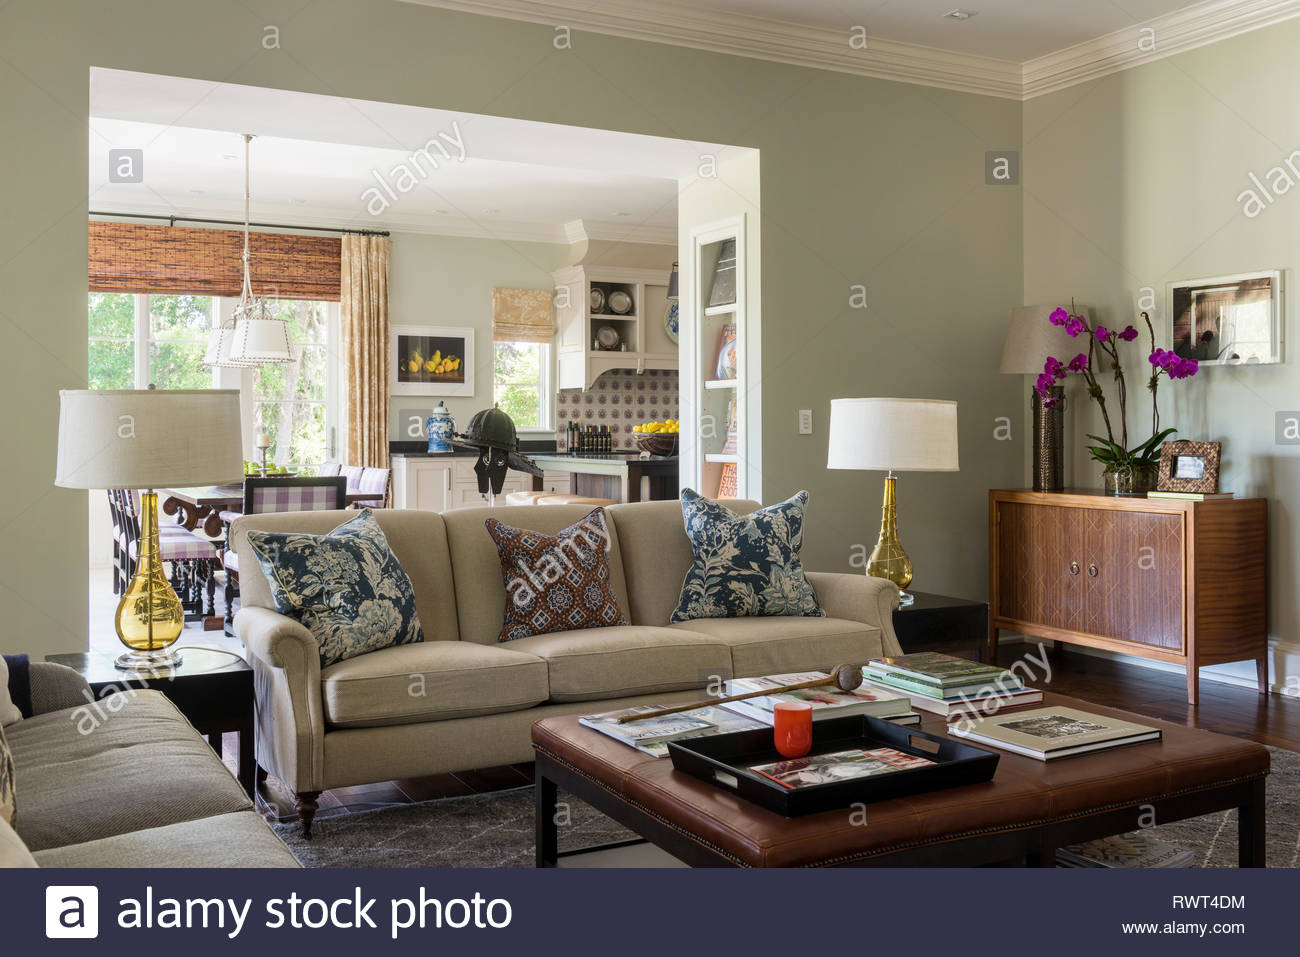 Country style living room with matching lamps - Stock Image